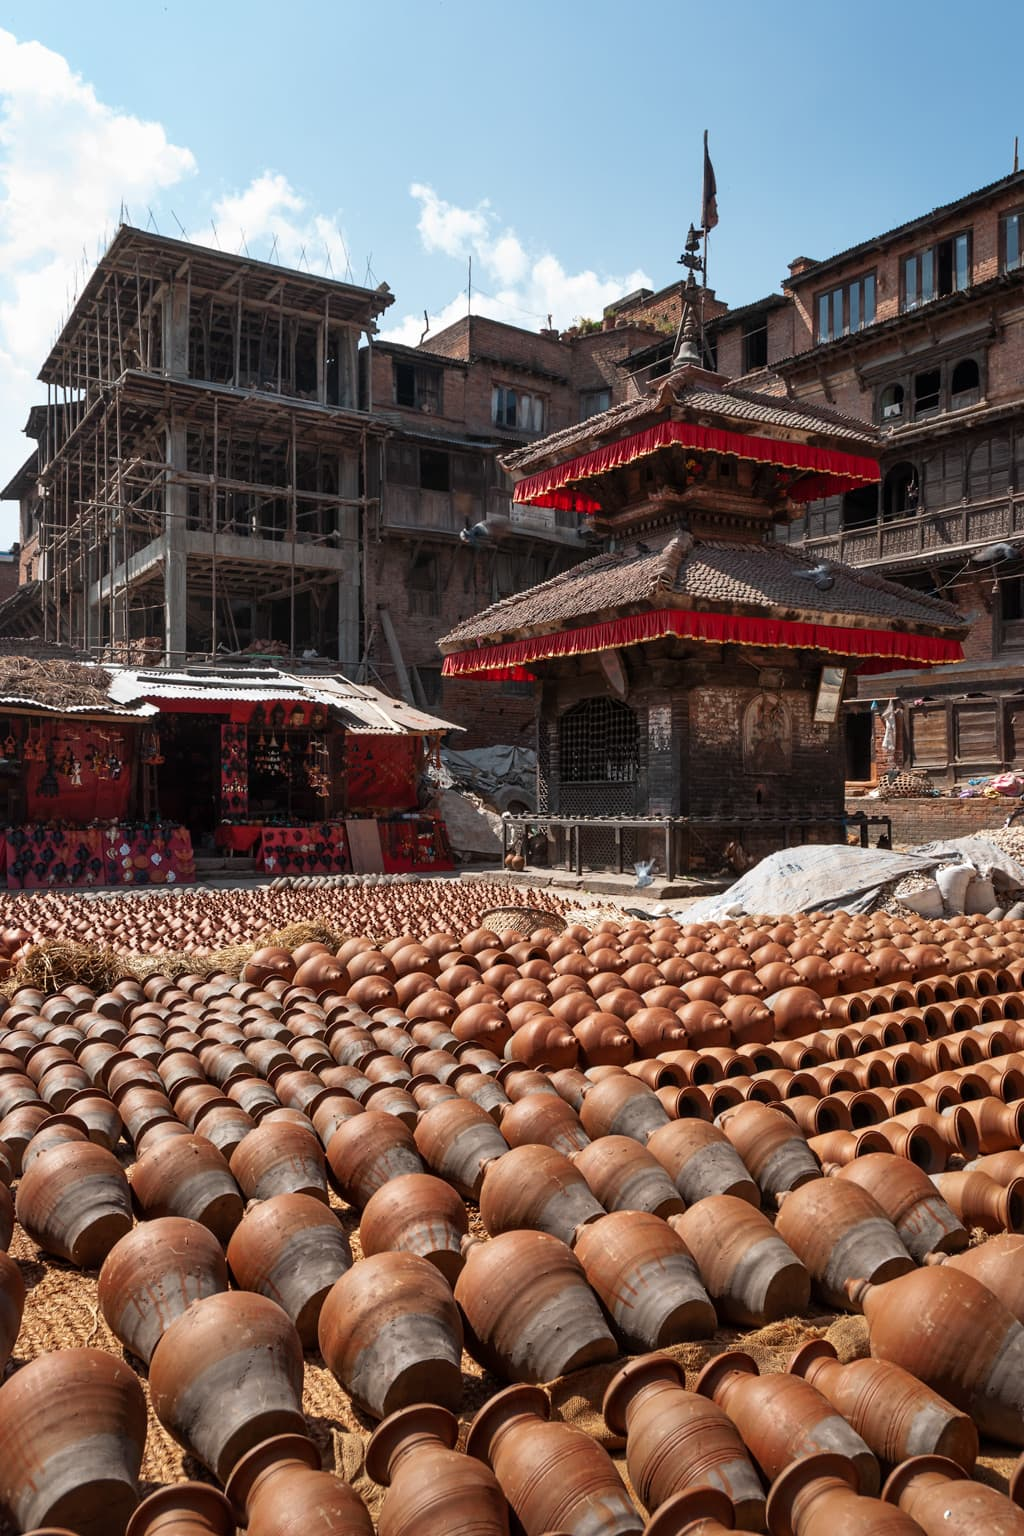 Pottery Square in Bhaktapur. Kathmandu Valley, Nepal.